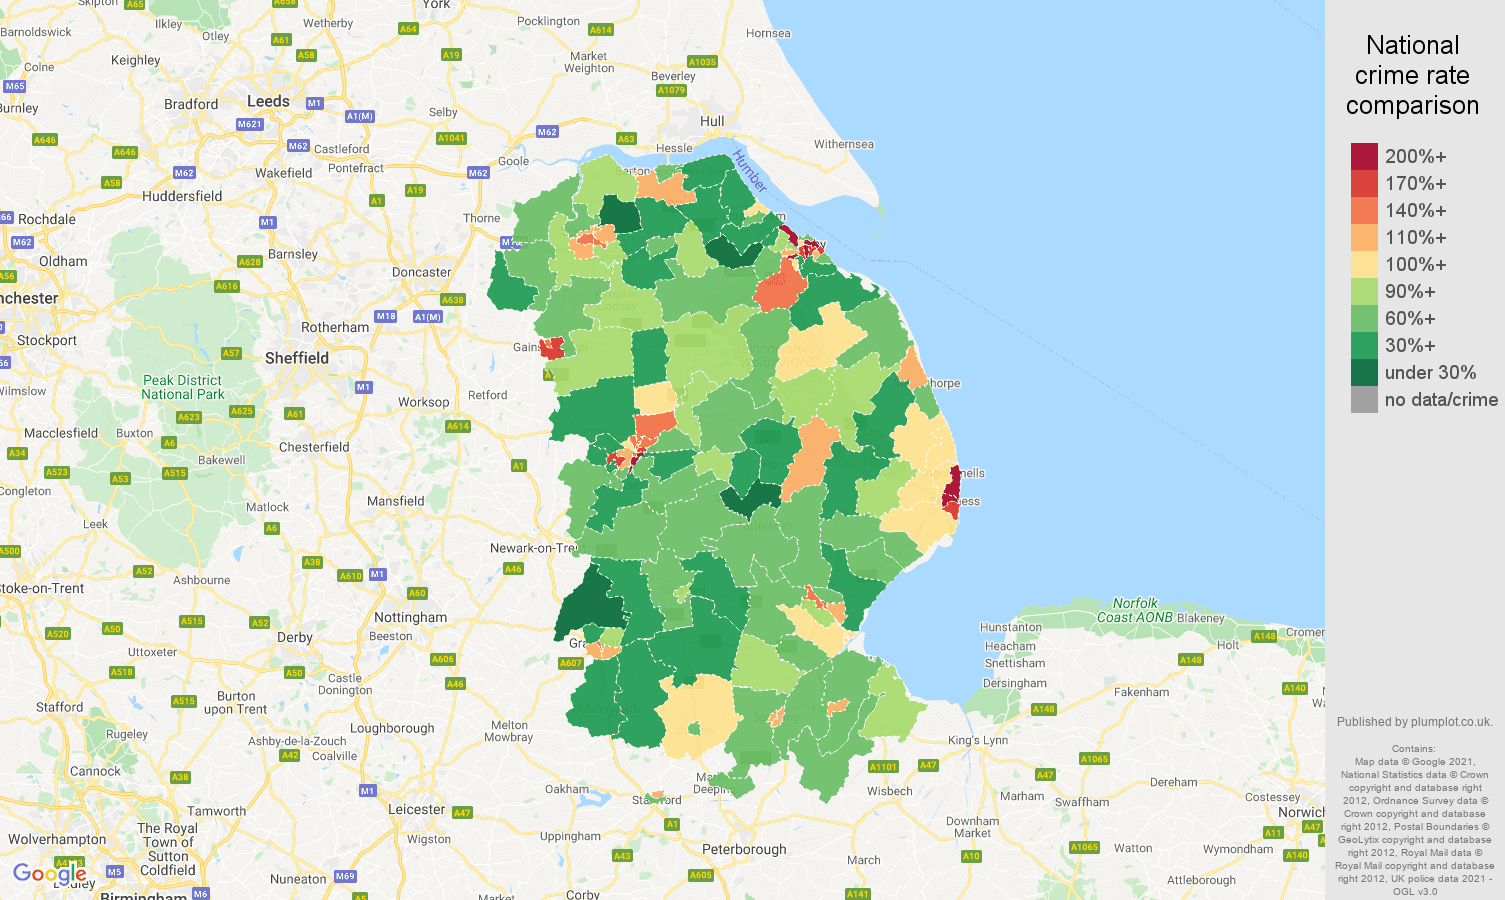 Lincolnshire violent crime rate comparison map